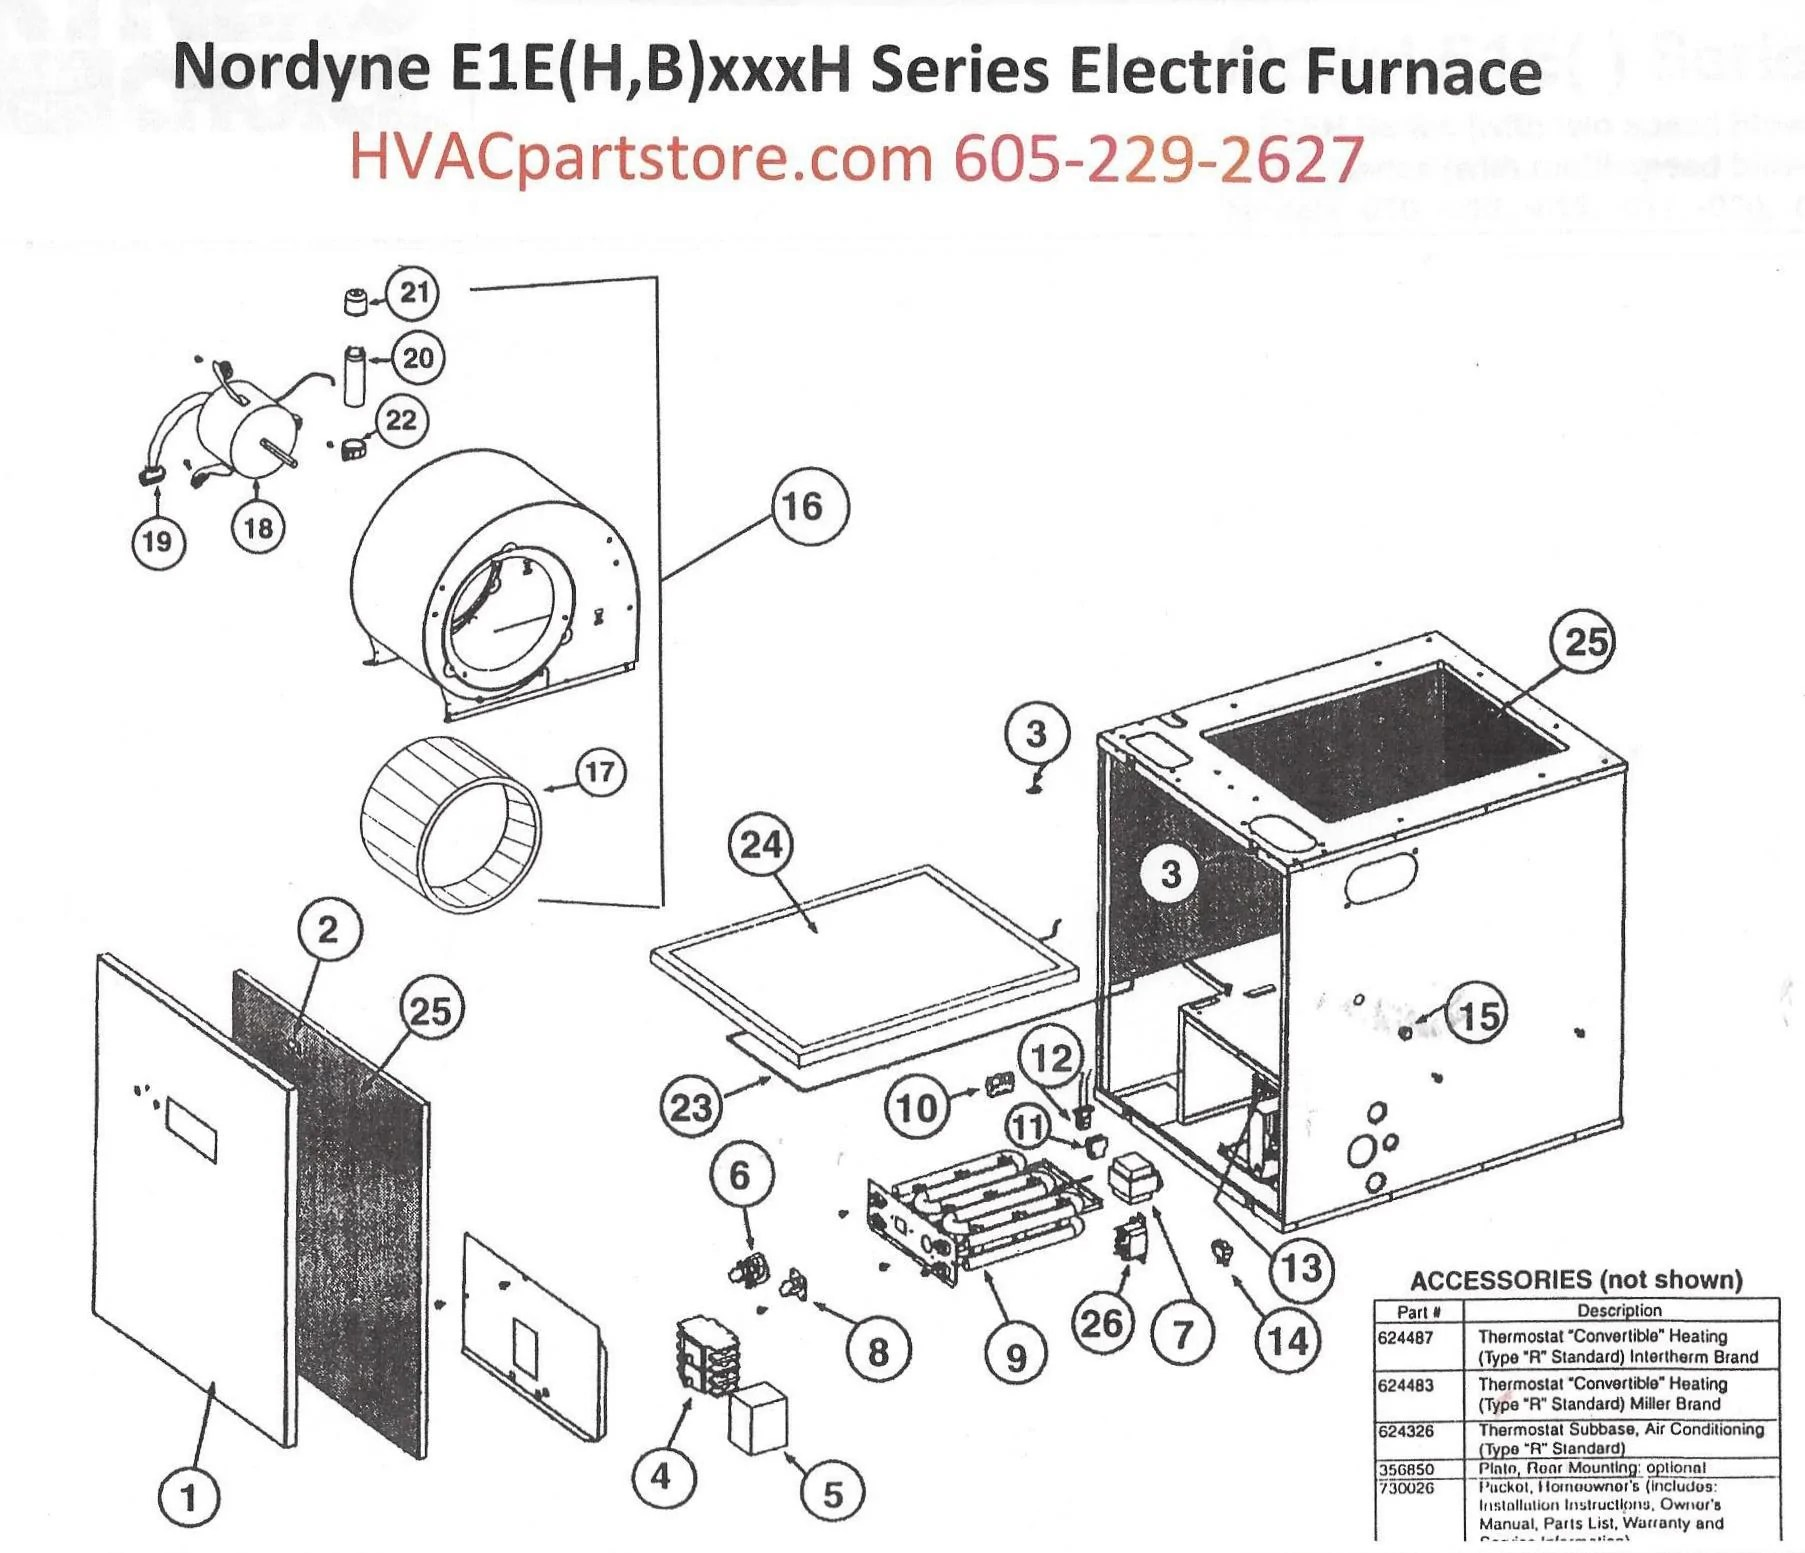 wiring diagram for electric furnace car amplifier e1eh015h nordyne parts  hvacpartstore